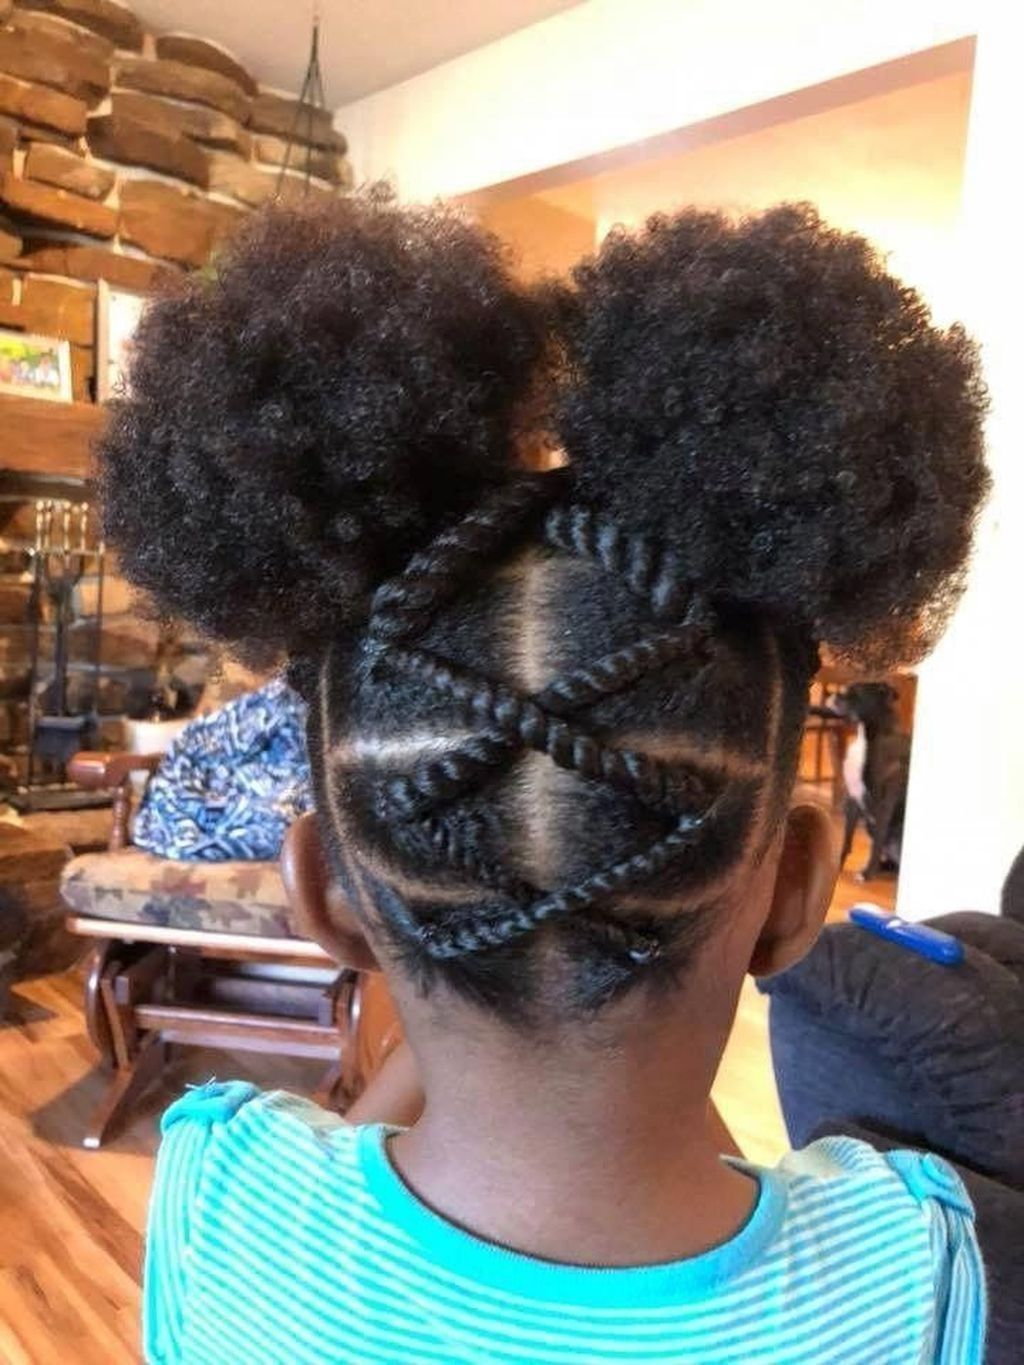 Latest Haircut For Girls Easy Little Girl Braids Cute Hair Ideas For Kids Cool Braid Hairstyles Black Kids Hairstyles Girls Natural Hairstyles